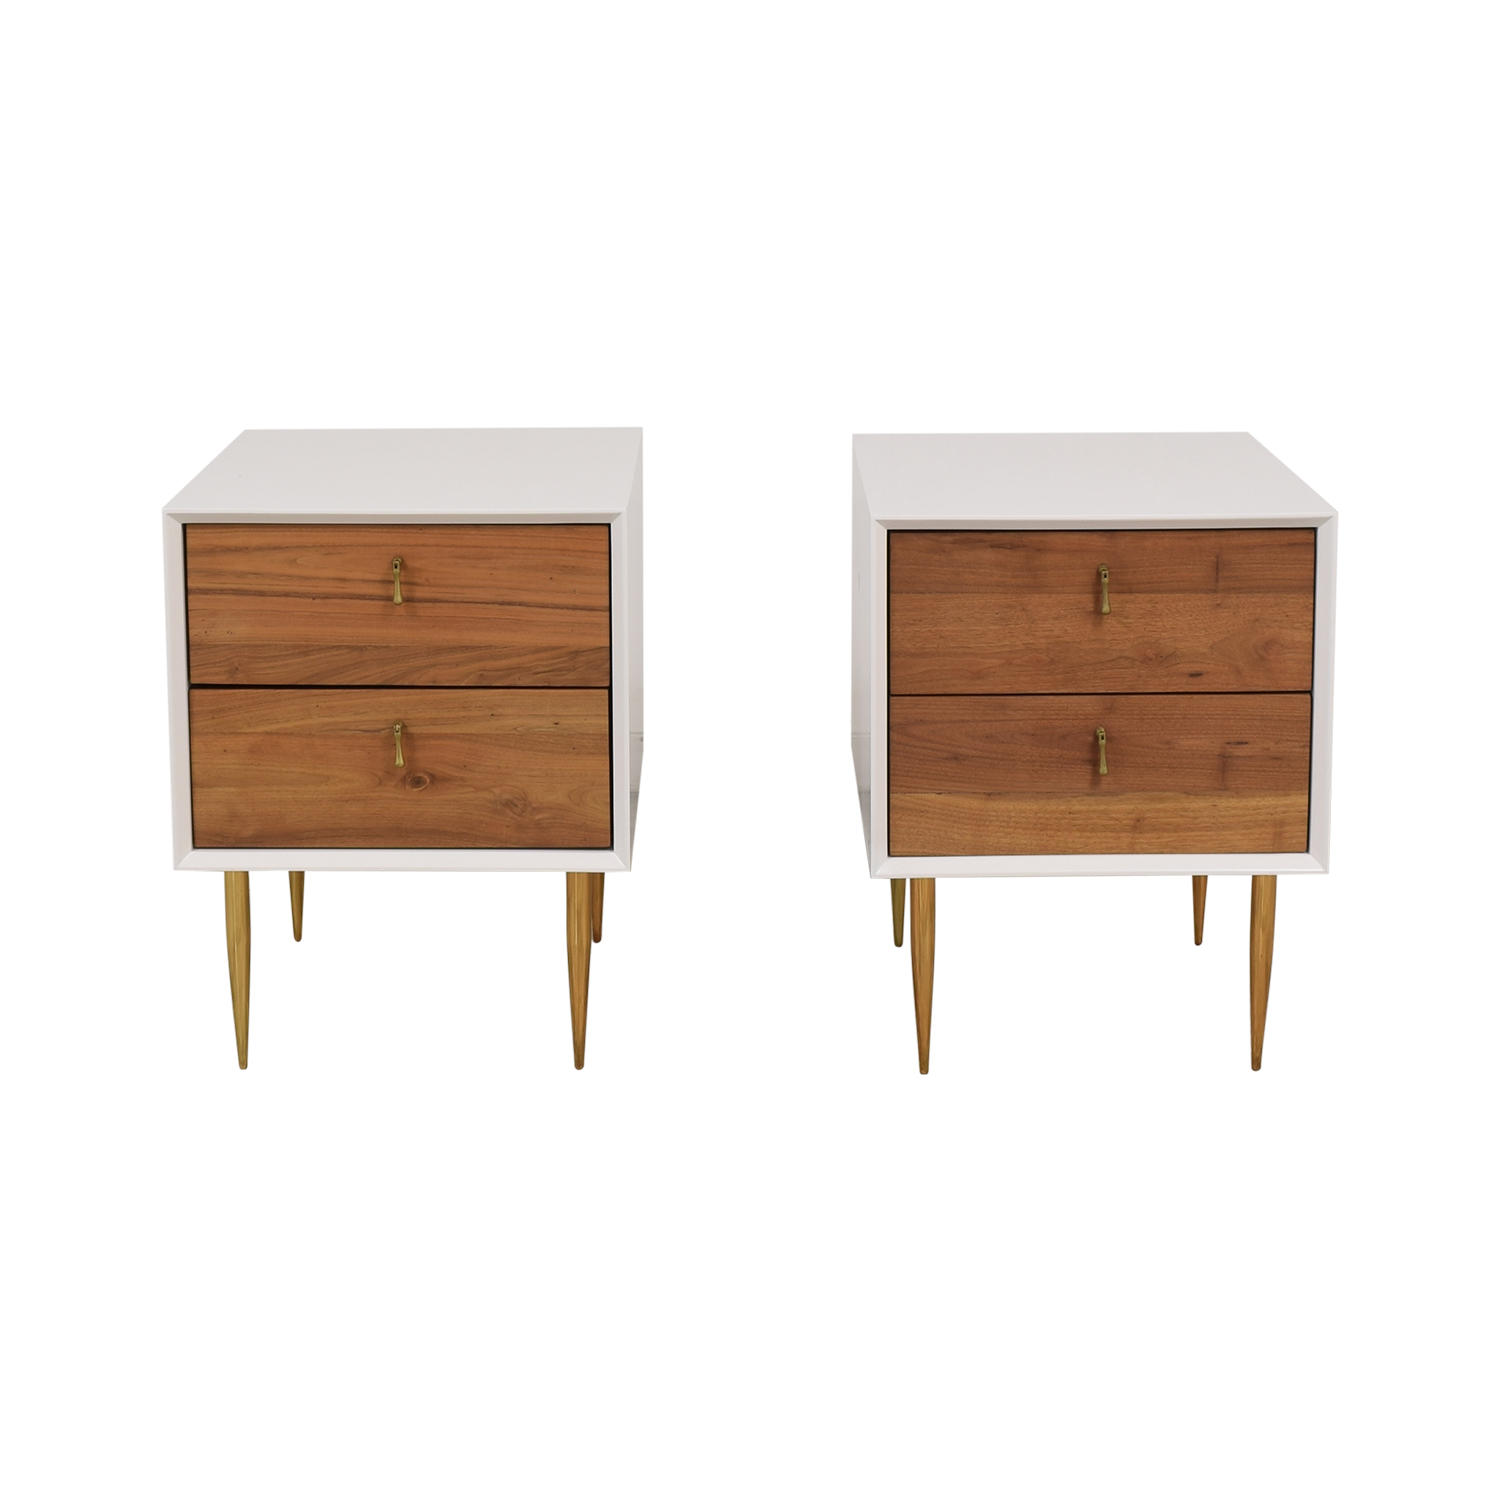 Organic Modernism Organic Modernism Two Drawer Bedside Tables nj